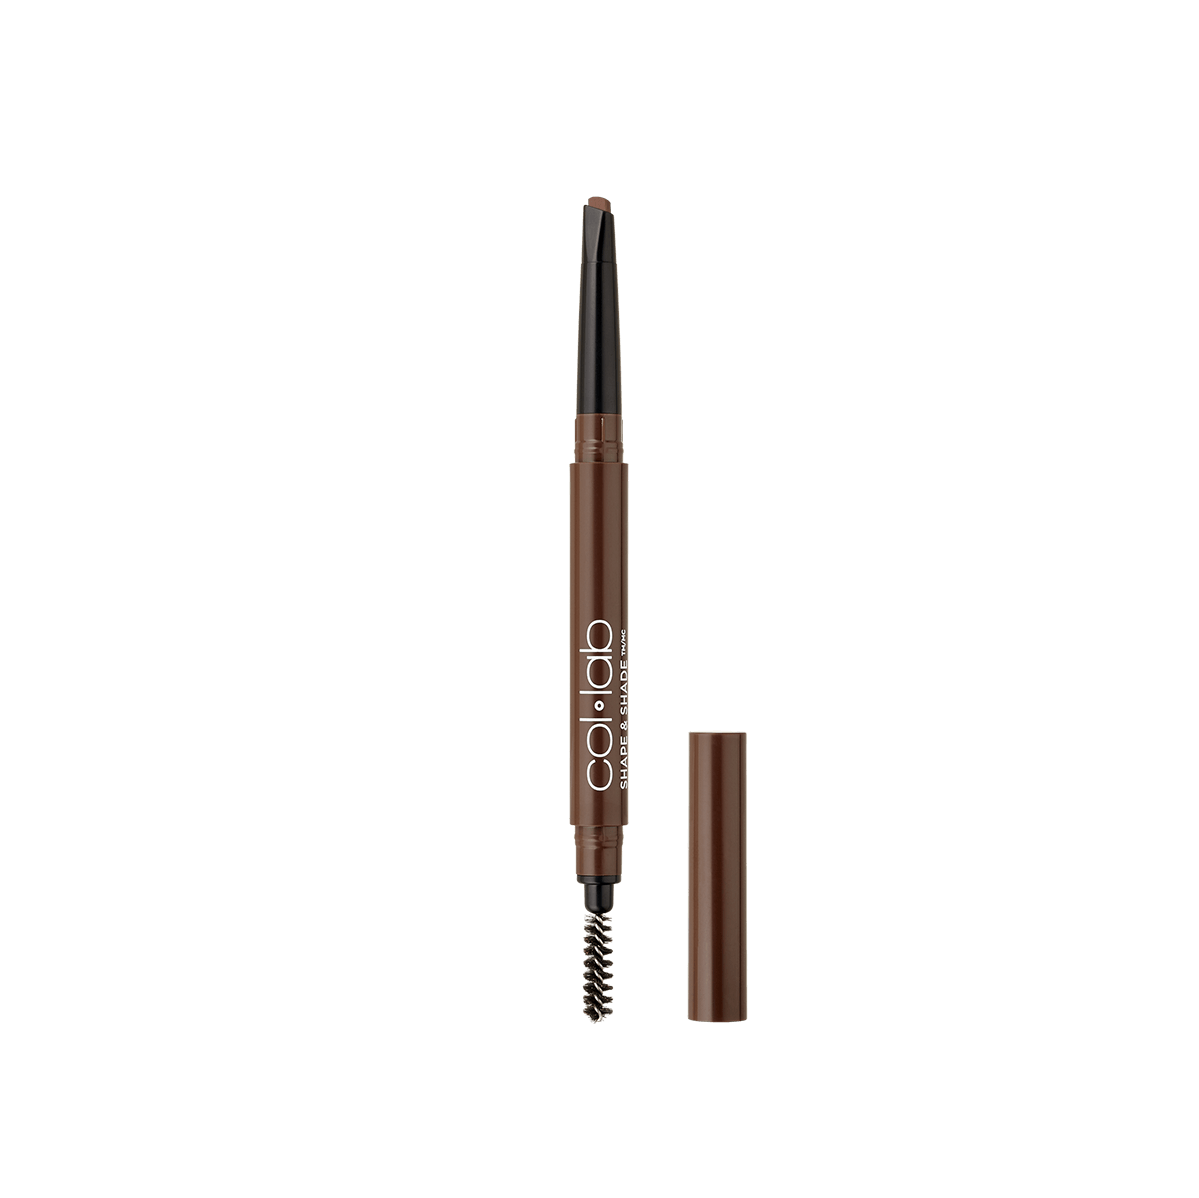 collab-shape-and-shade-brow-pencil-neutralbrown-open.png